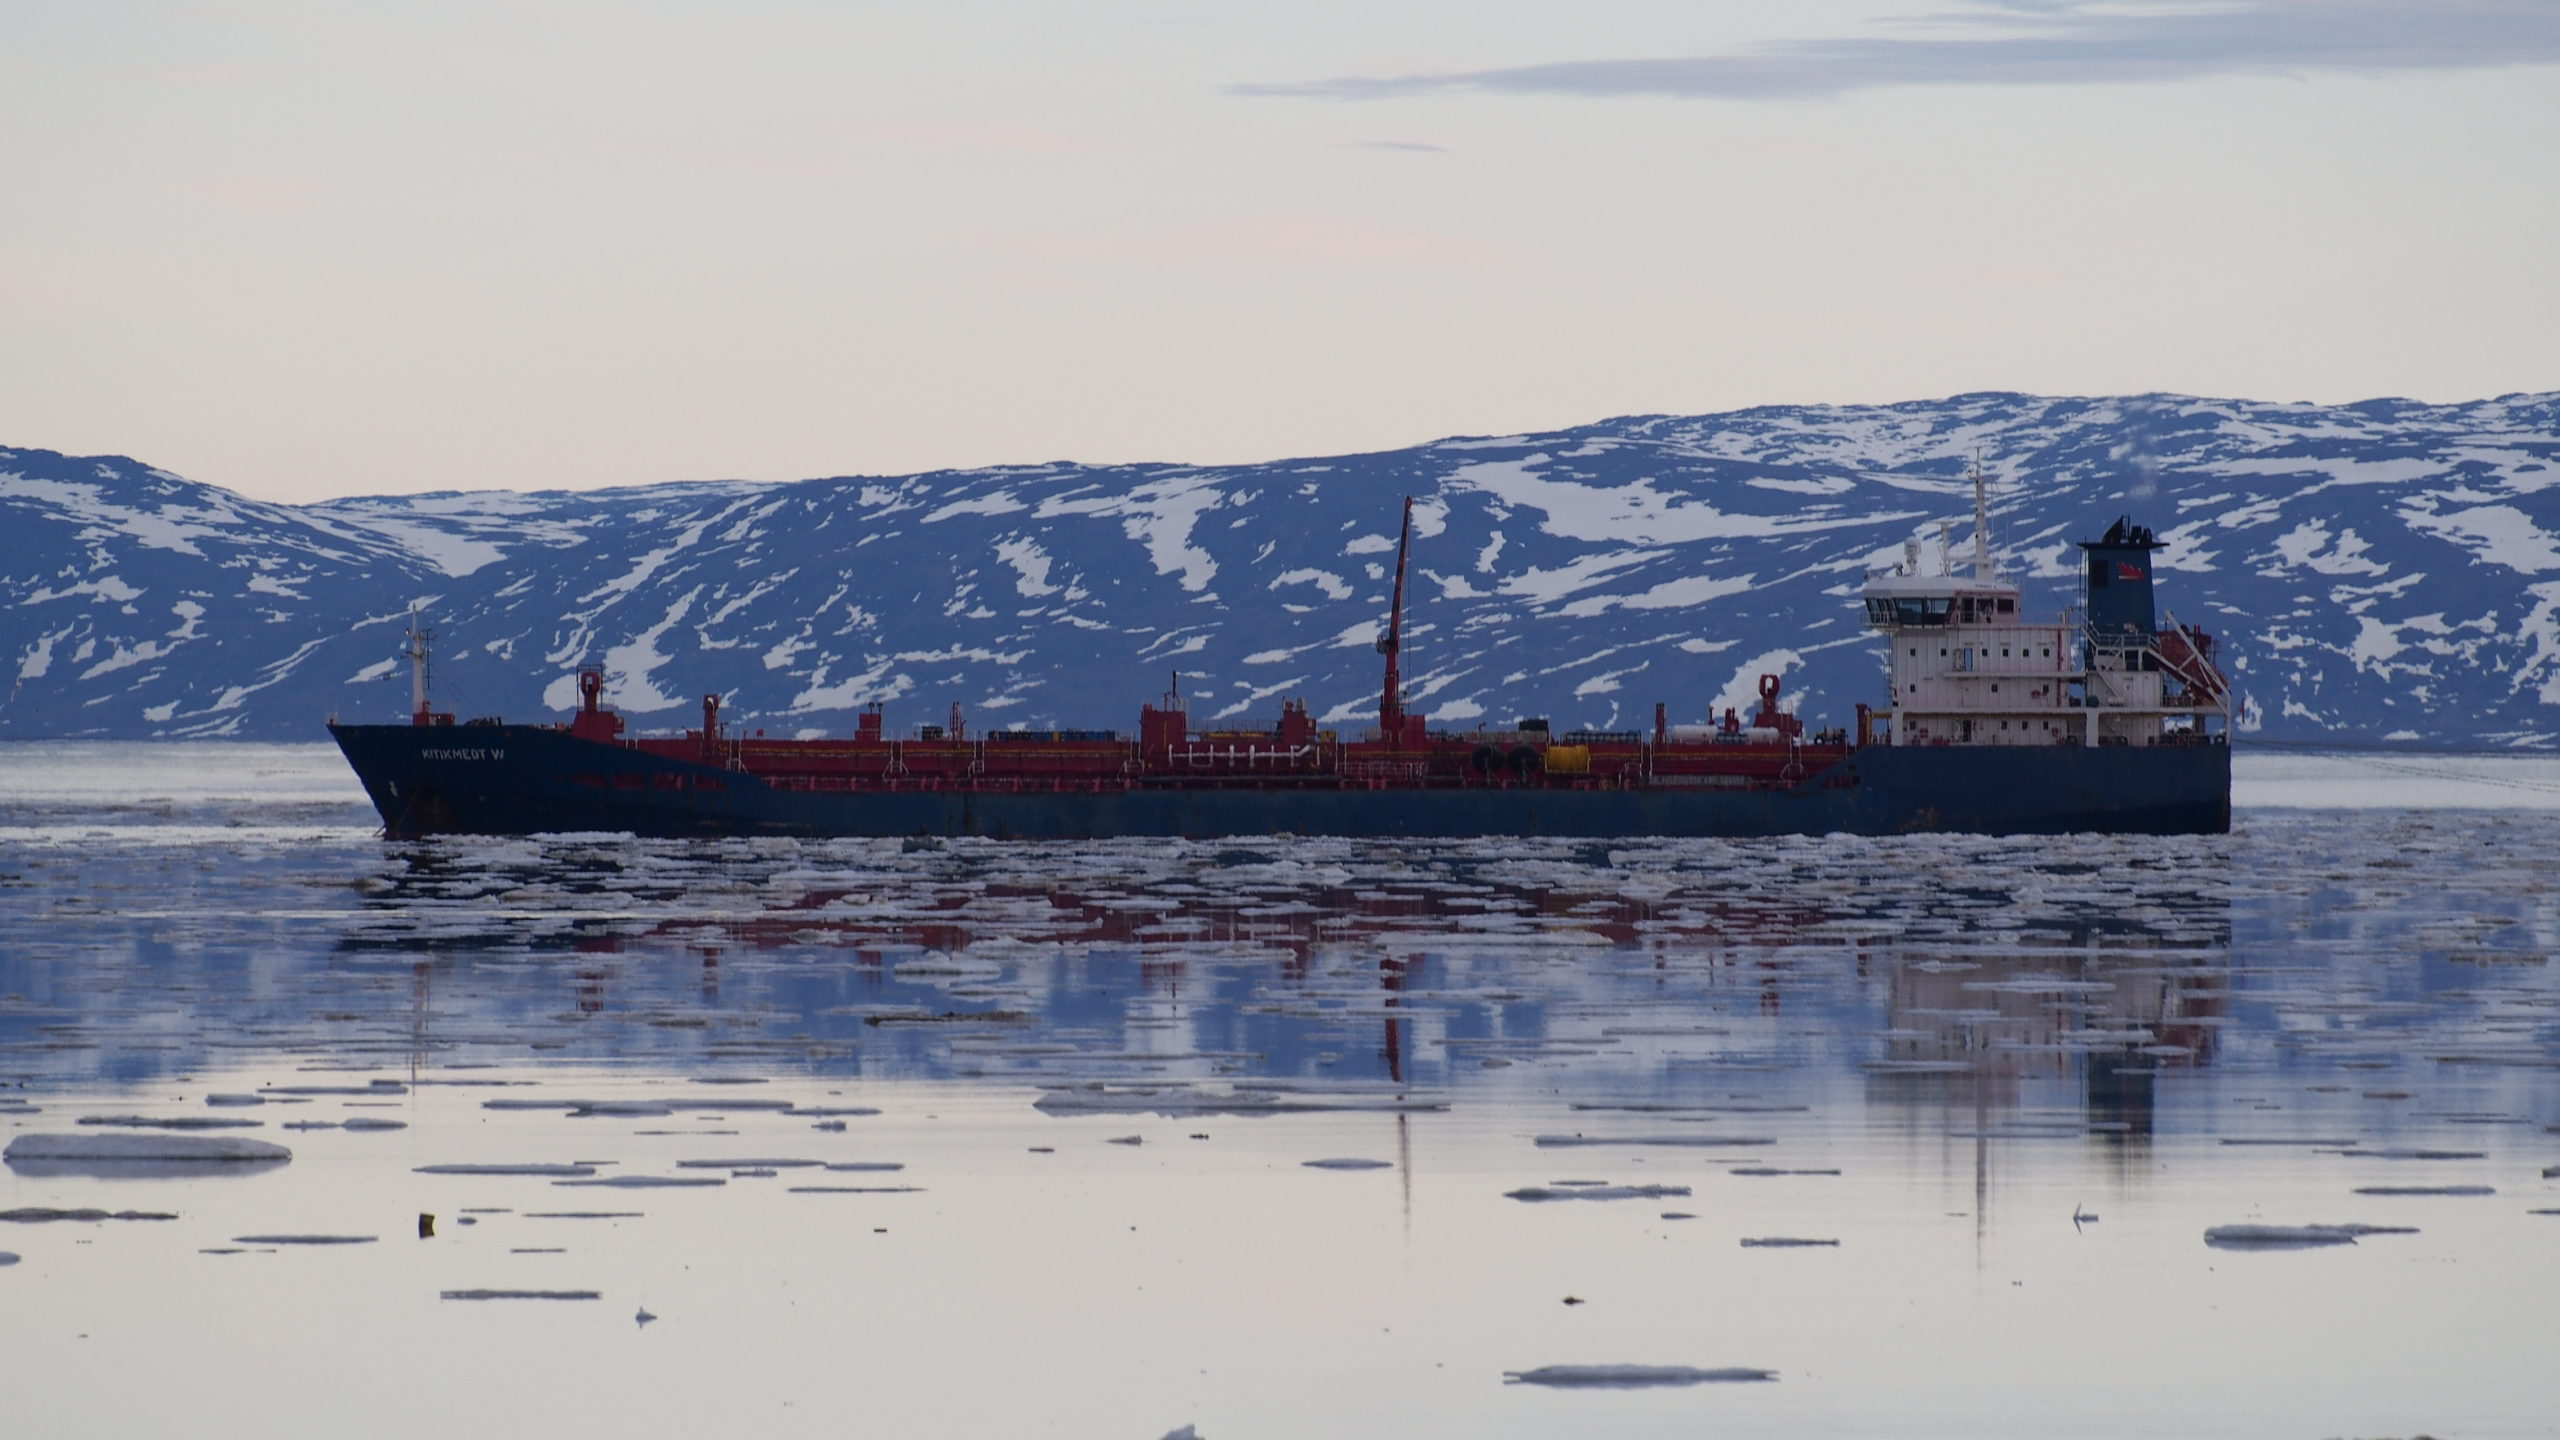 Kitikmeot ship